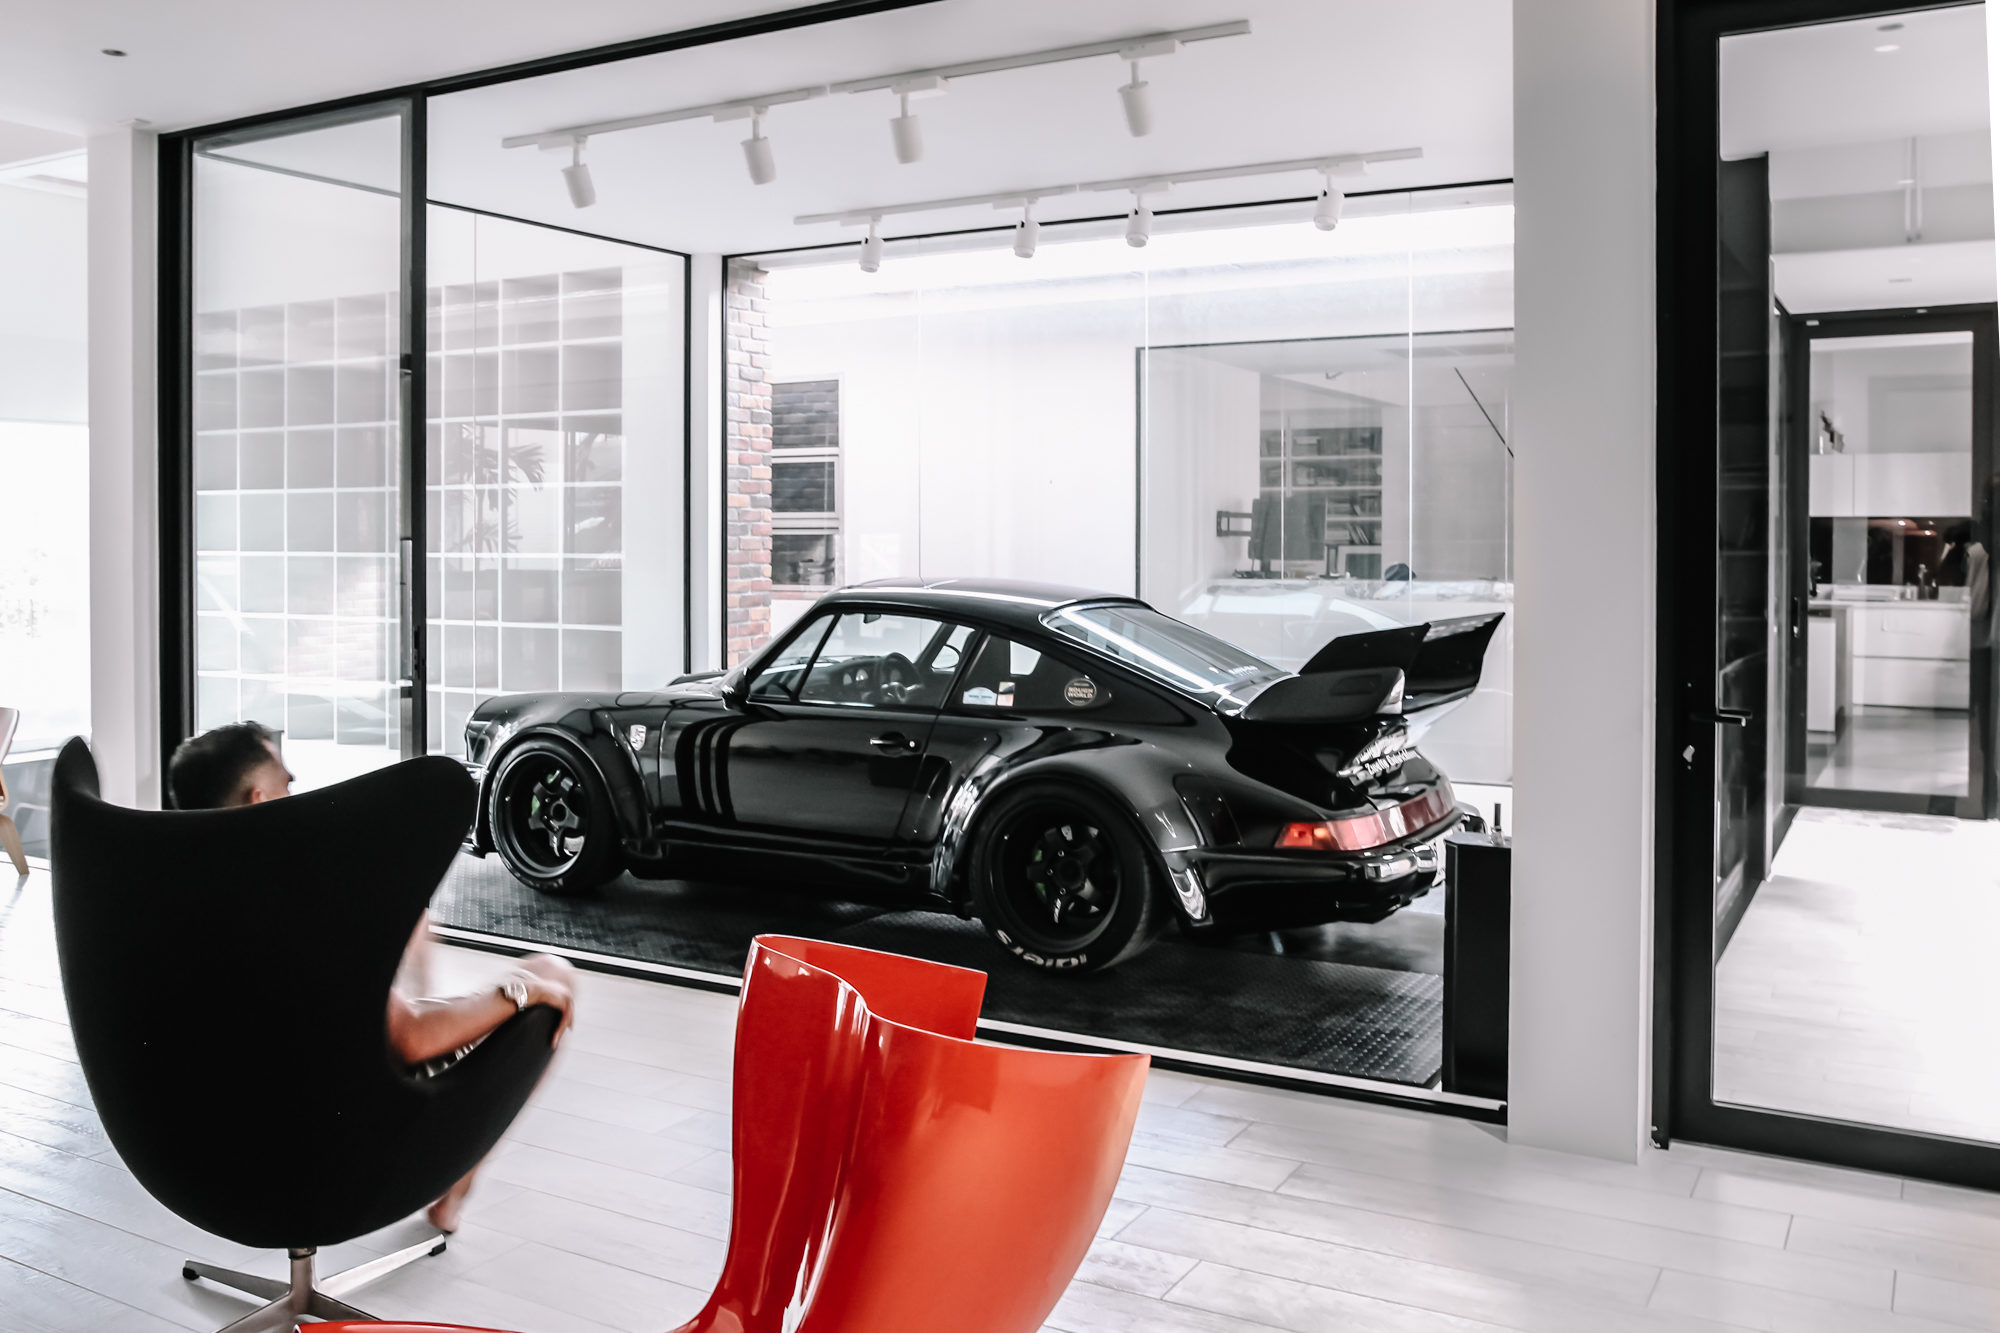 The Ultimate Dream Dwelling of Every Car Lover